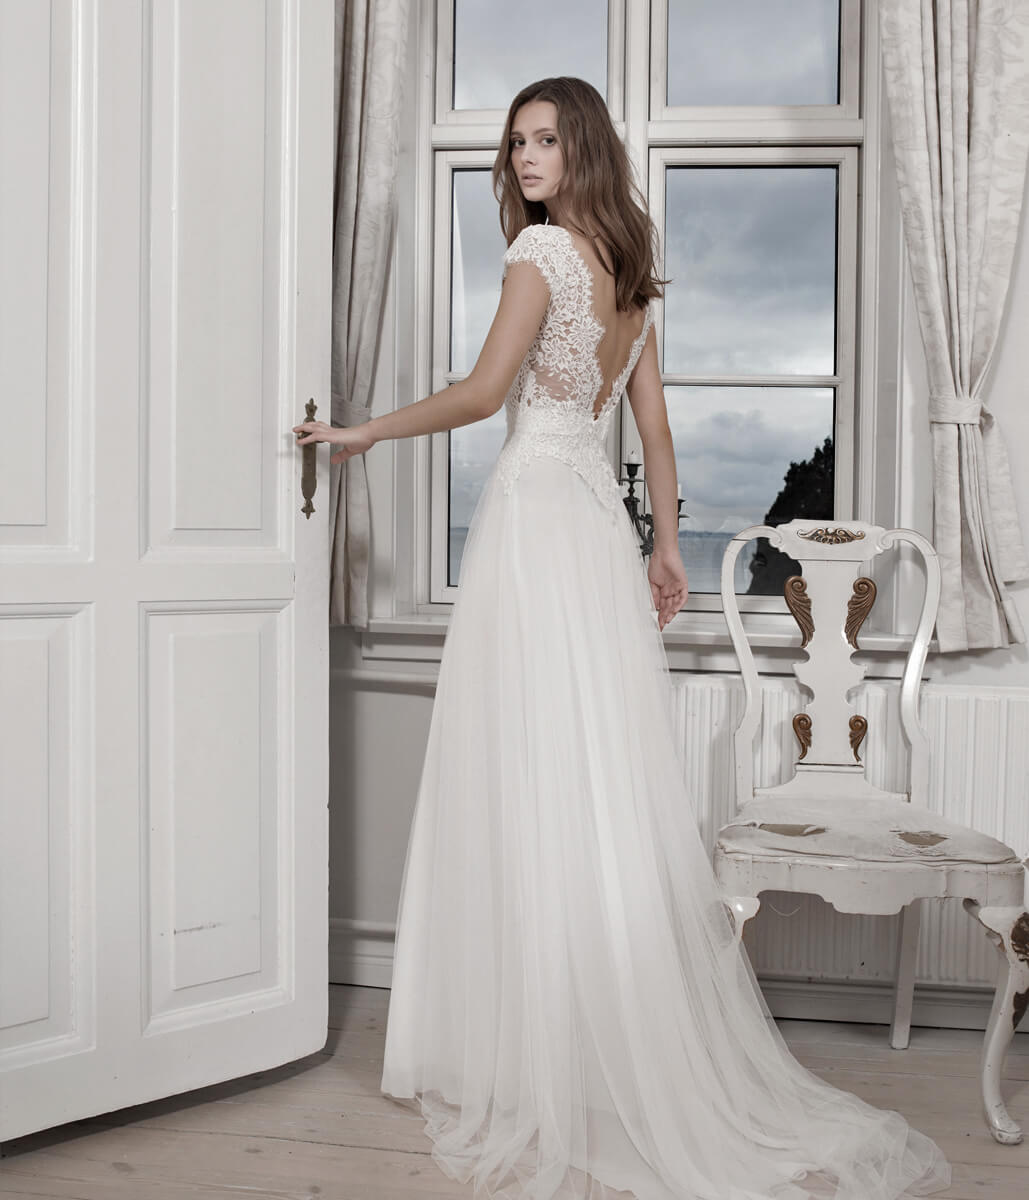 angelika dluzen weddingdress collection bridal